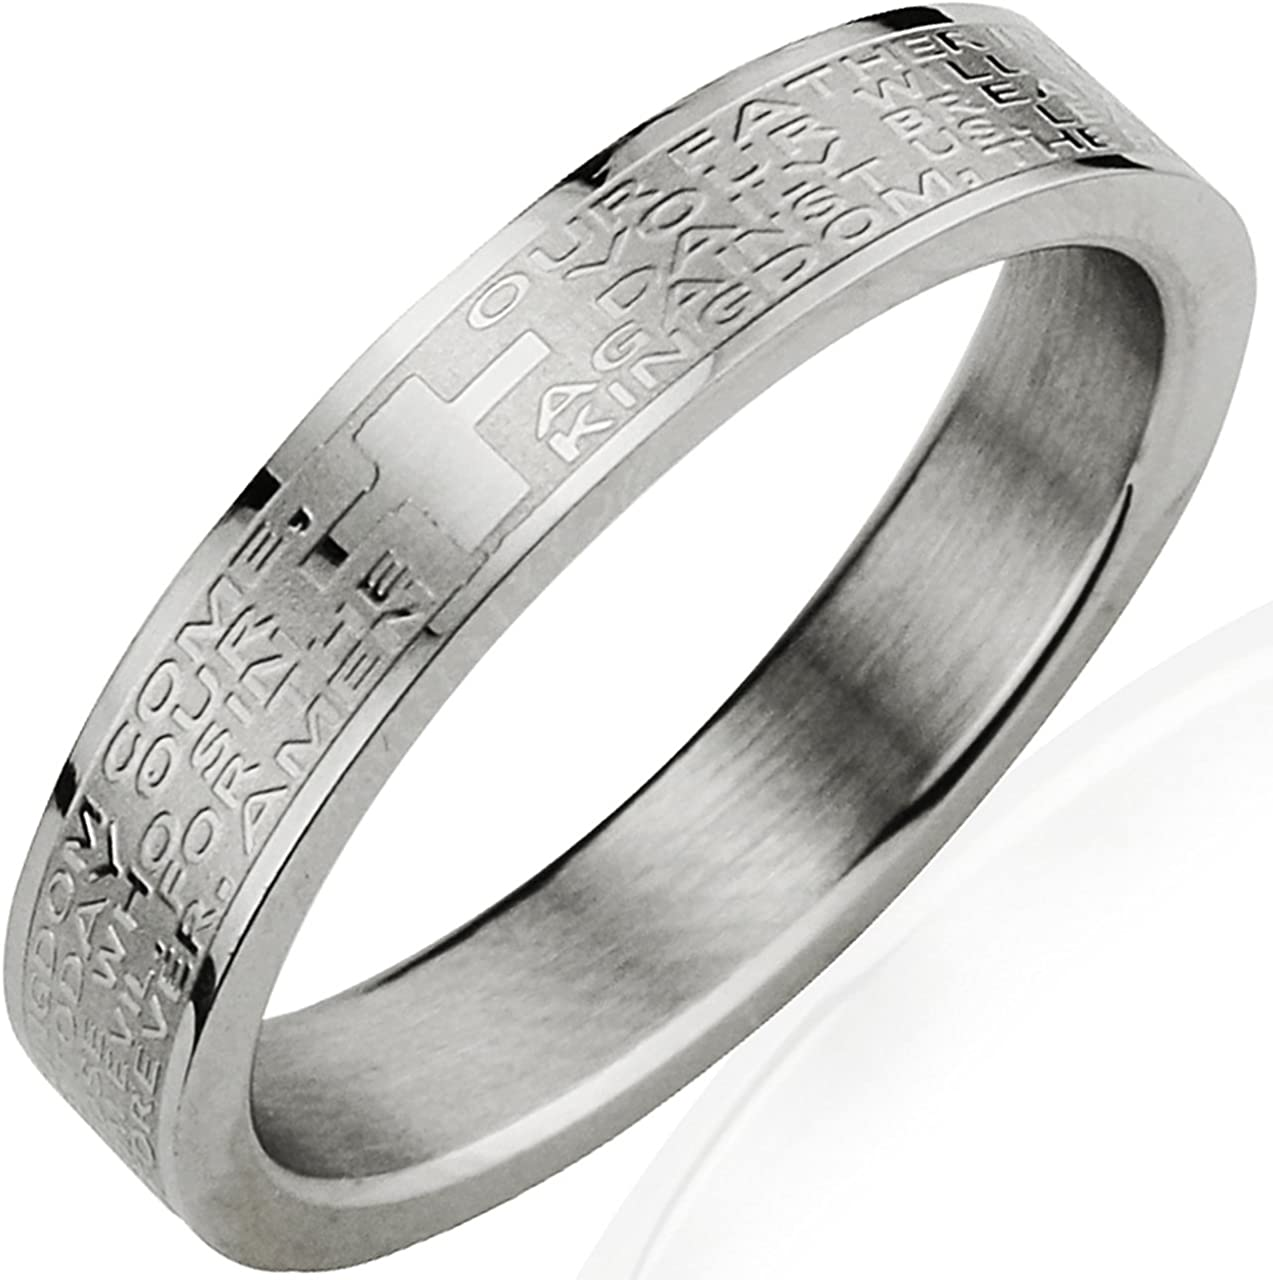 Dahlia Max 84% OFF Stainless Steel English Lord's Discount mail order Prayer - Ring 4mm Band Wom